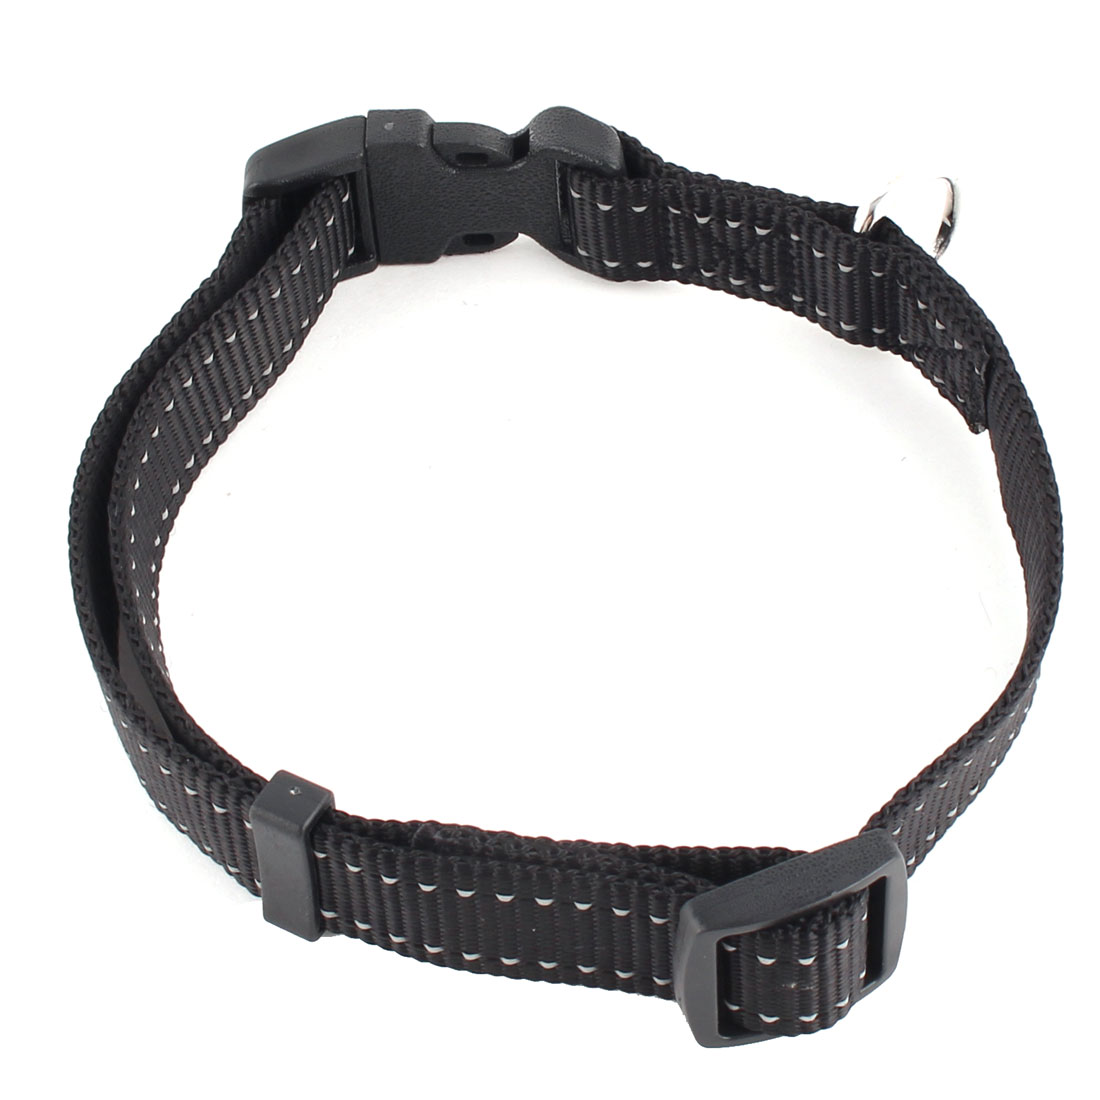 Pet Dog Nylon Adjustable Buckle Strap Reflective Neck Collar Belt Black